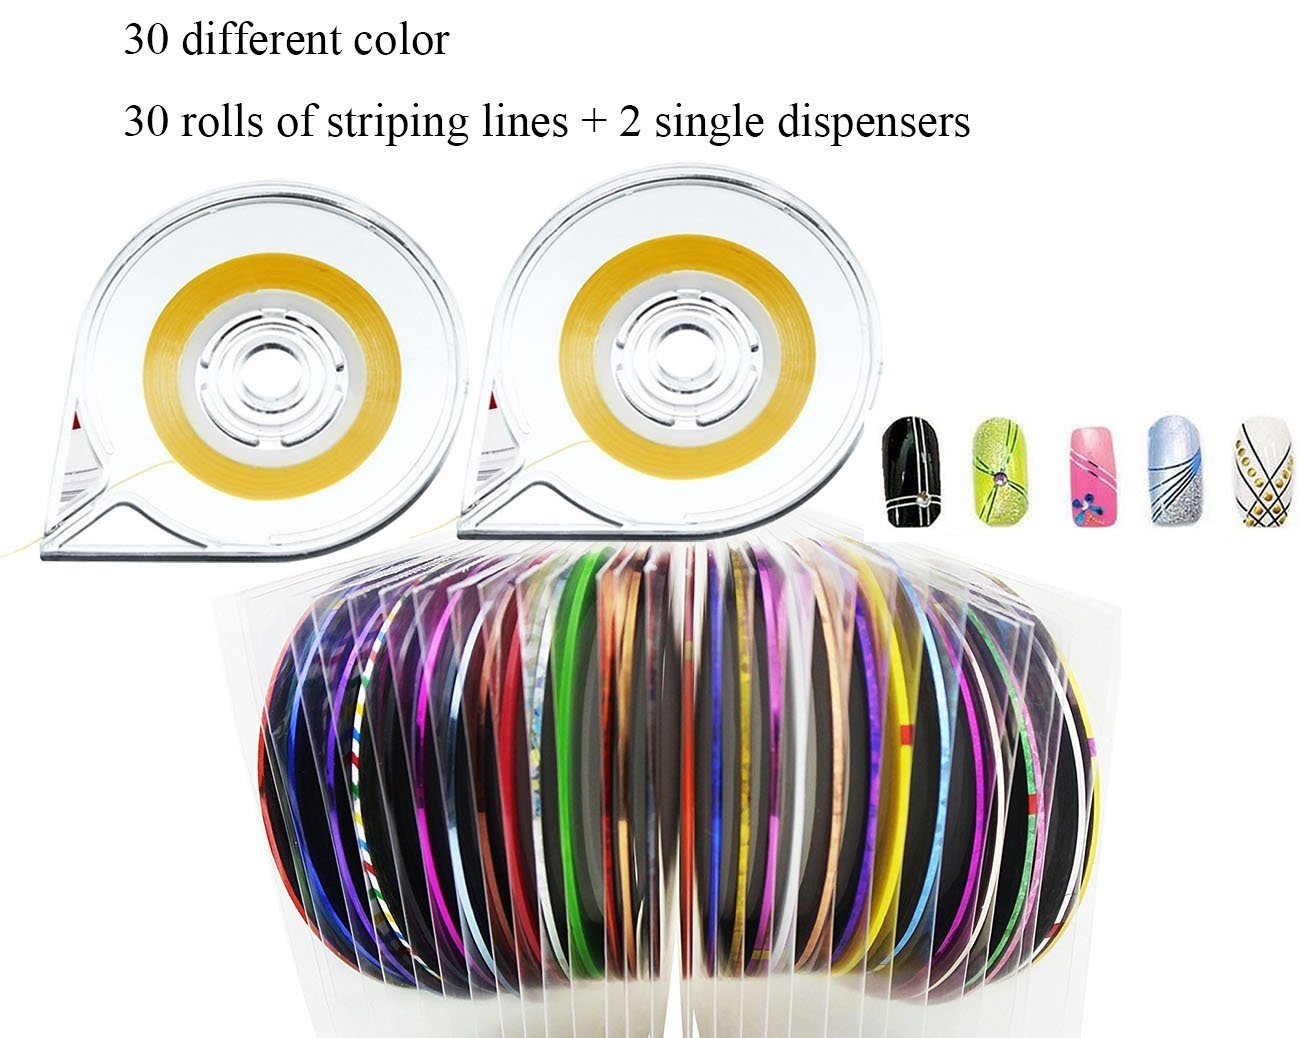 levylisa 30 Rolls Nail Sticker Line Mixed Colour Nails Striping Tape Decal  For DIY 3D Nail Art Tips Decorations Foil,Metallic Holo, Colours, Stripes